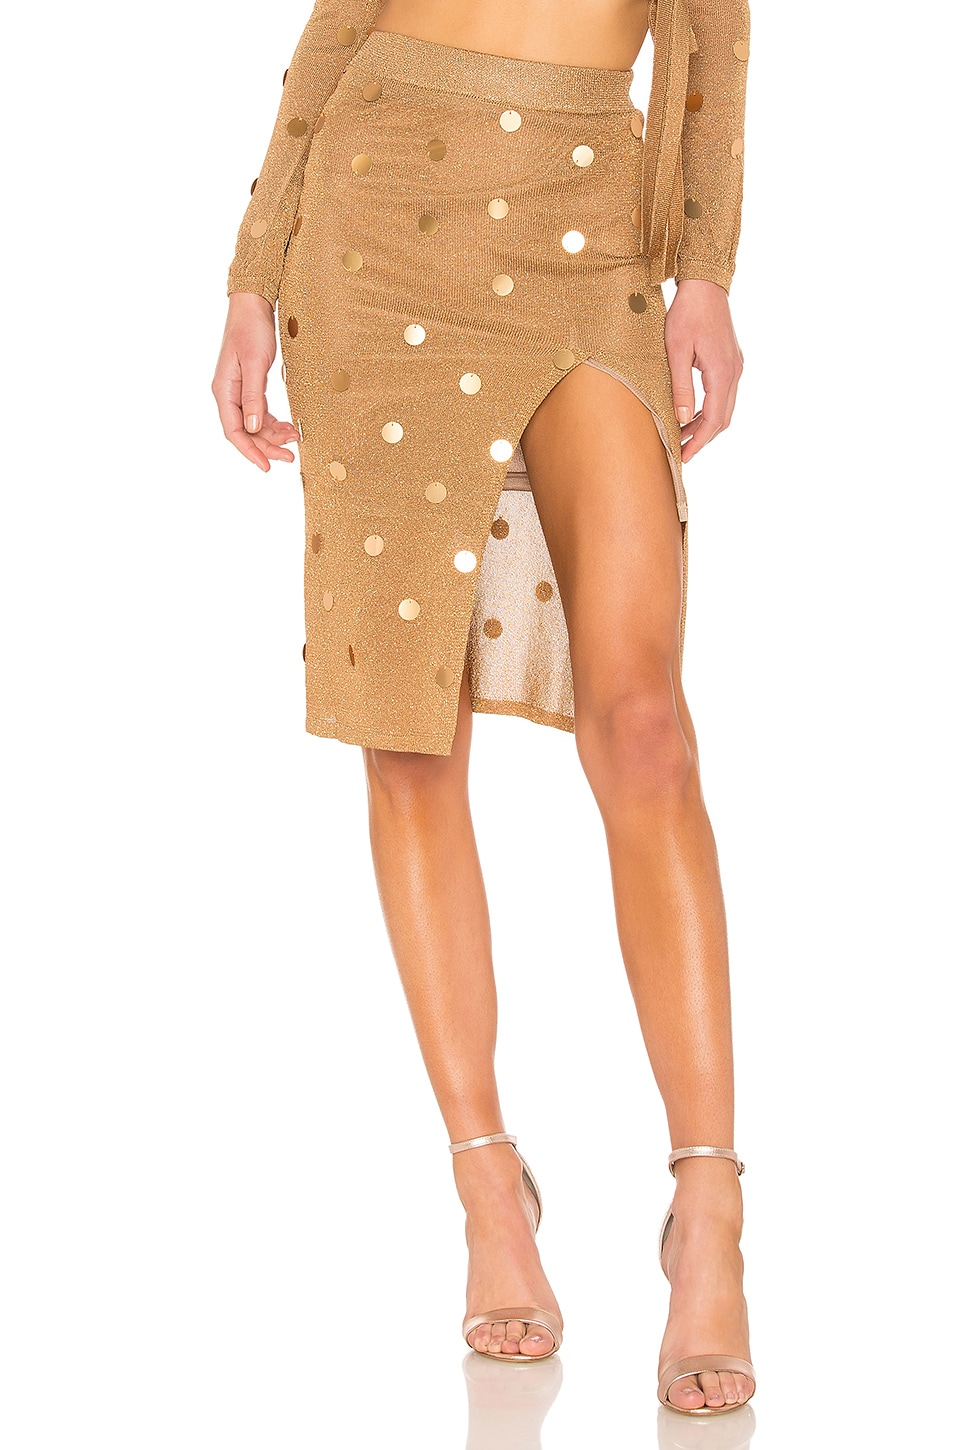 House of Harlow 1960 x REVOLVE Roxanne Skirt in Gold